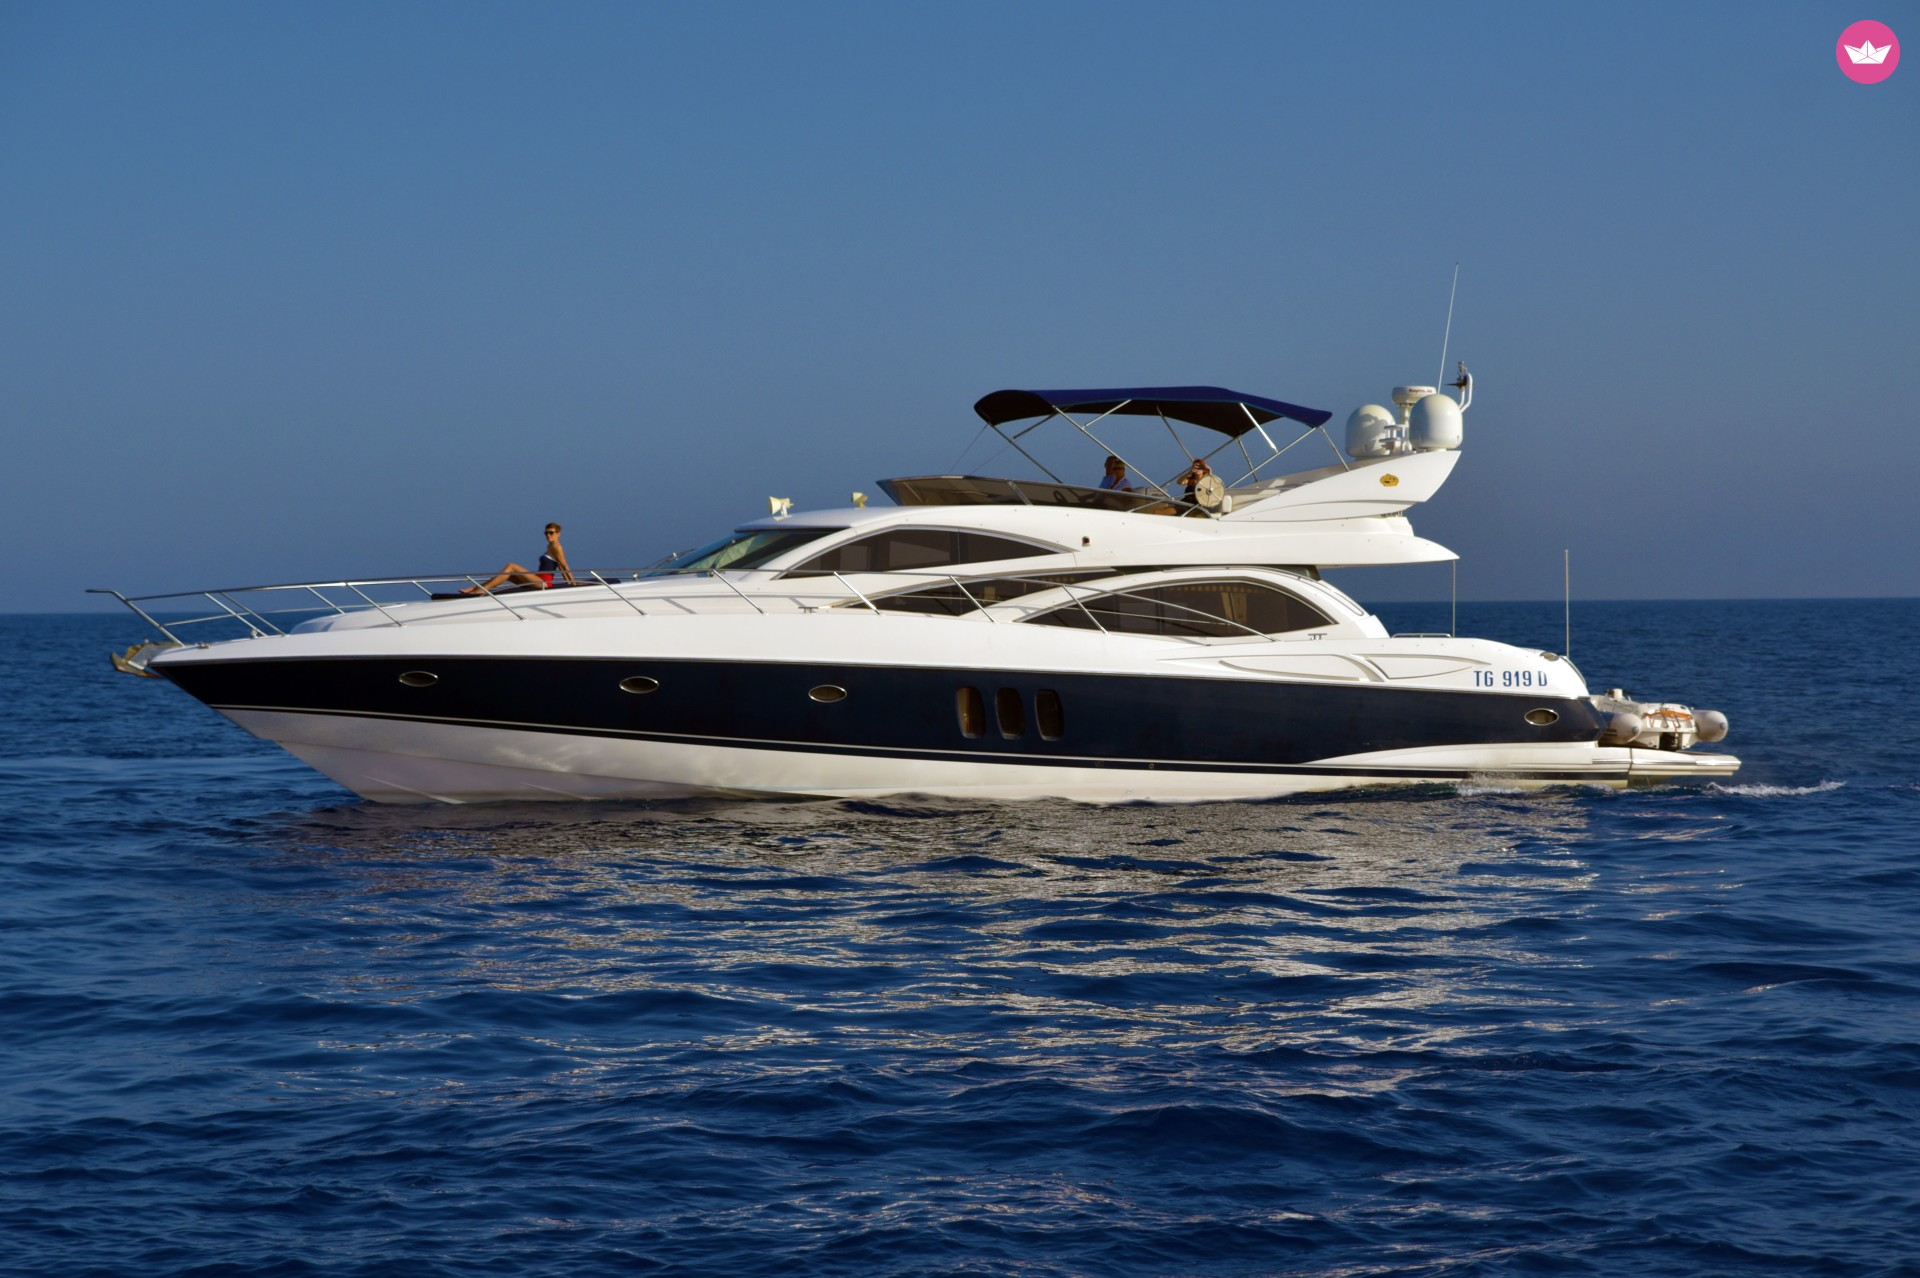 Rent / charter Luxury Yacht for Conference & Incentive / Meetings / Corporate, Full Day Tour, Private Charter & Team Building Activities in Malta & Gozo - Sunseeker Manhattan 64